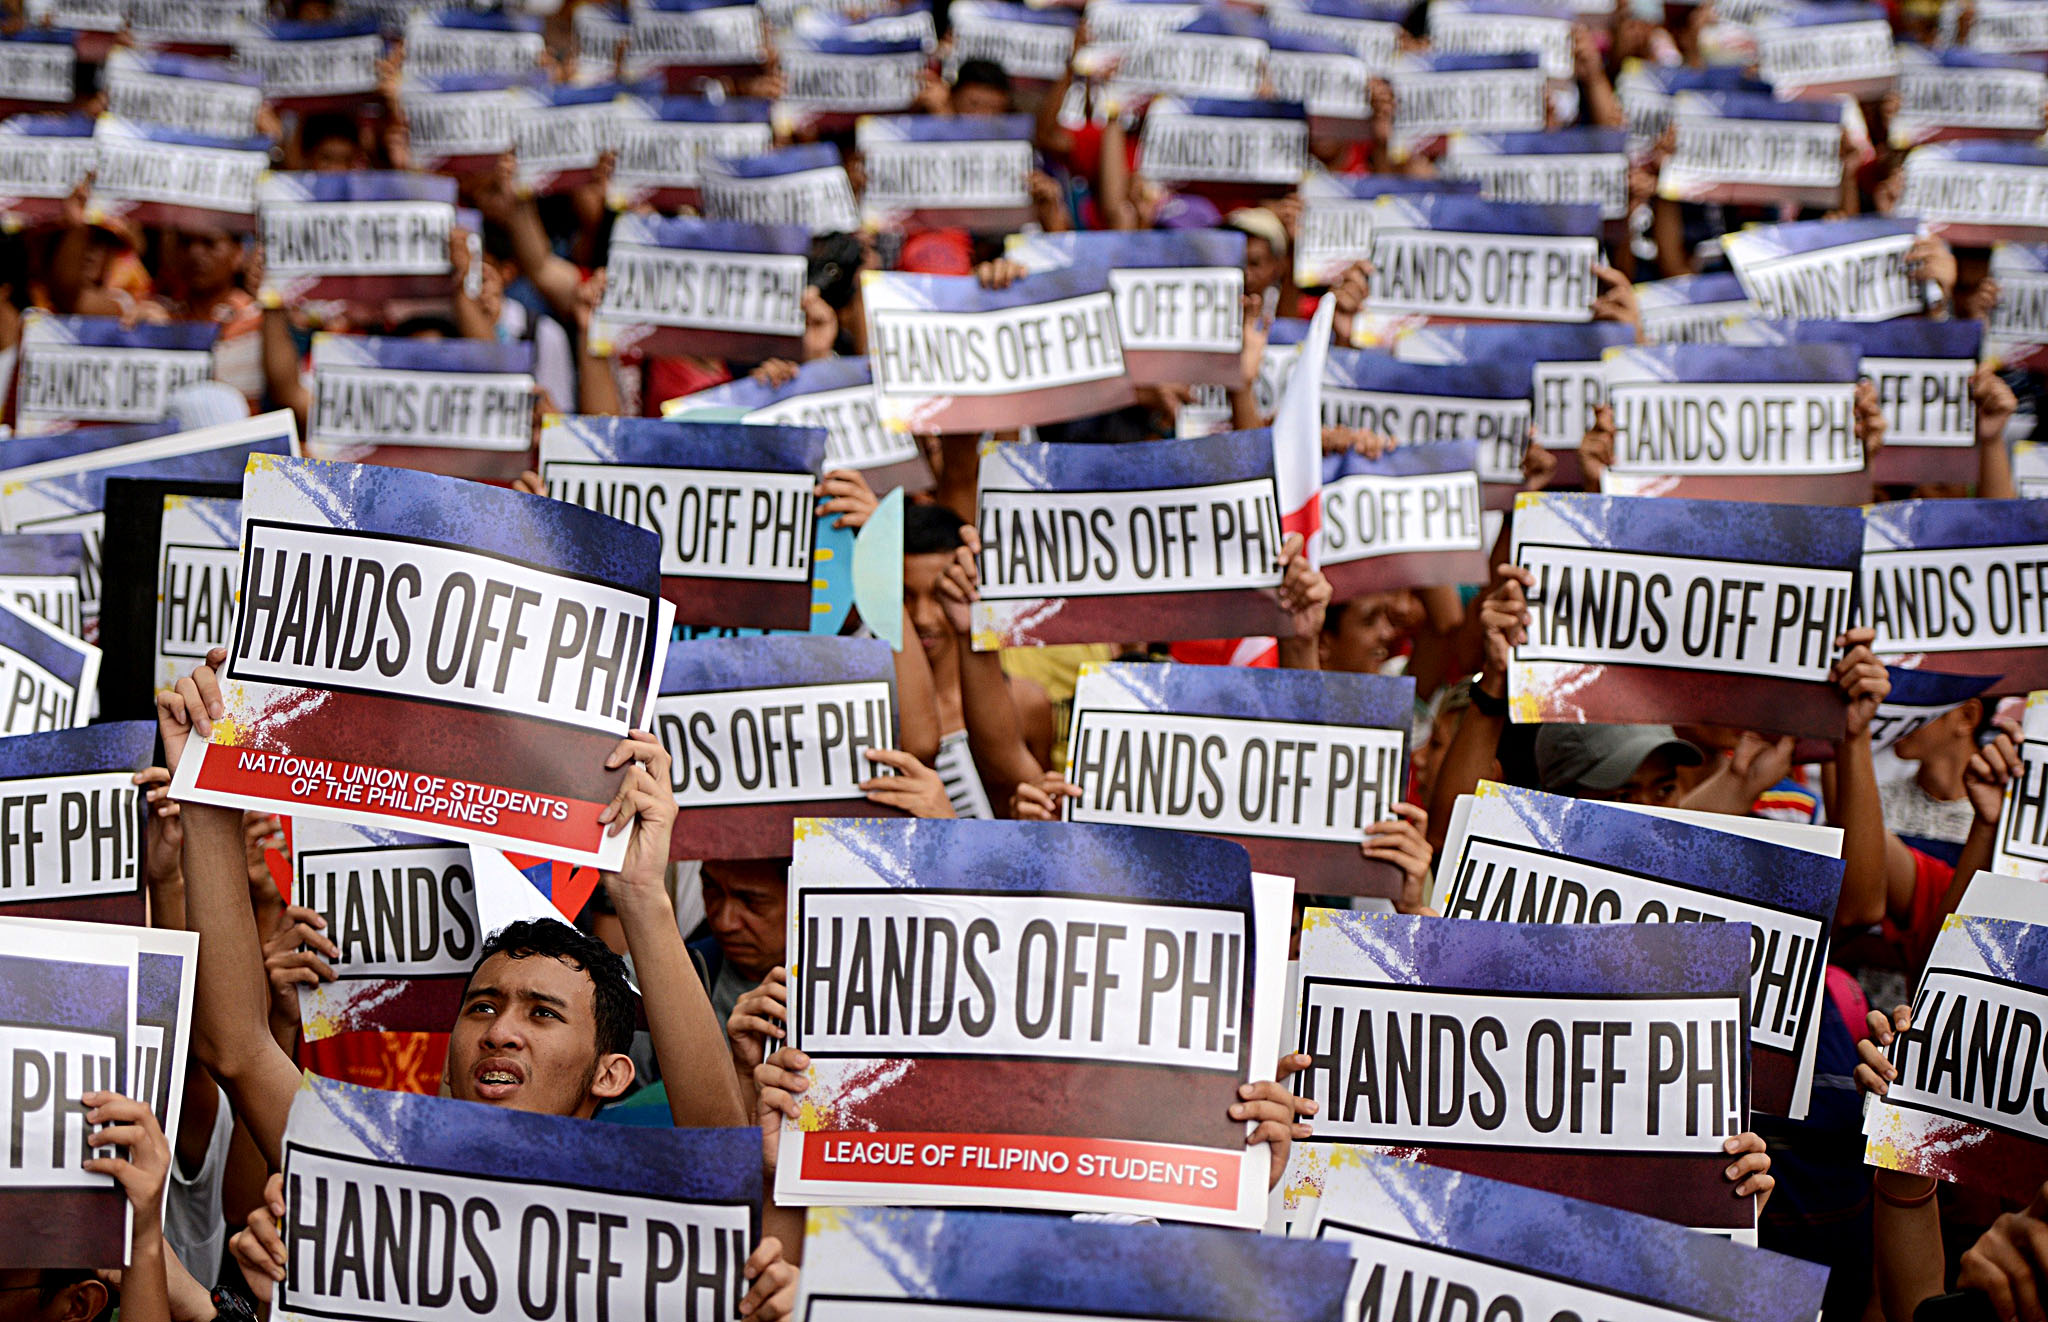 Activists hold a protest in front of the...Activists hold a protest in front of the Chinese Consular Office in Manila on June 12, 2015, as the country commemorates the 117th anniversary of the Philippines' declaration of independence from Spain. The protesters shouted slogans against China's reclamation and construction activities on islands and reefs in the Spratly Group of the South China Sea that are also claimed by the Philippines.  AFP PHOTO / NOEL CELISNOEL CELIS/AFP/Getty Images